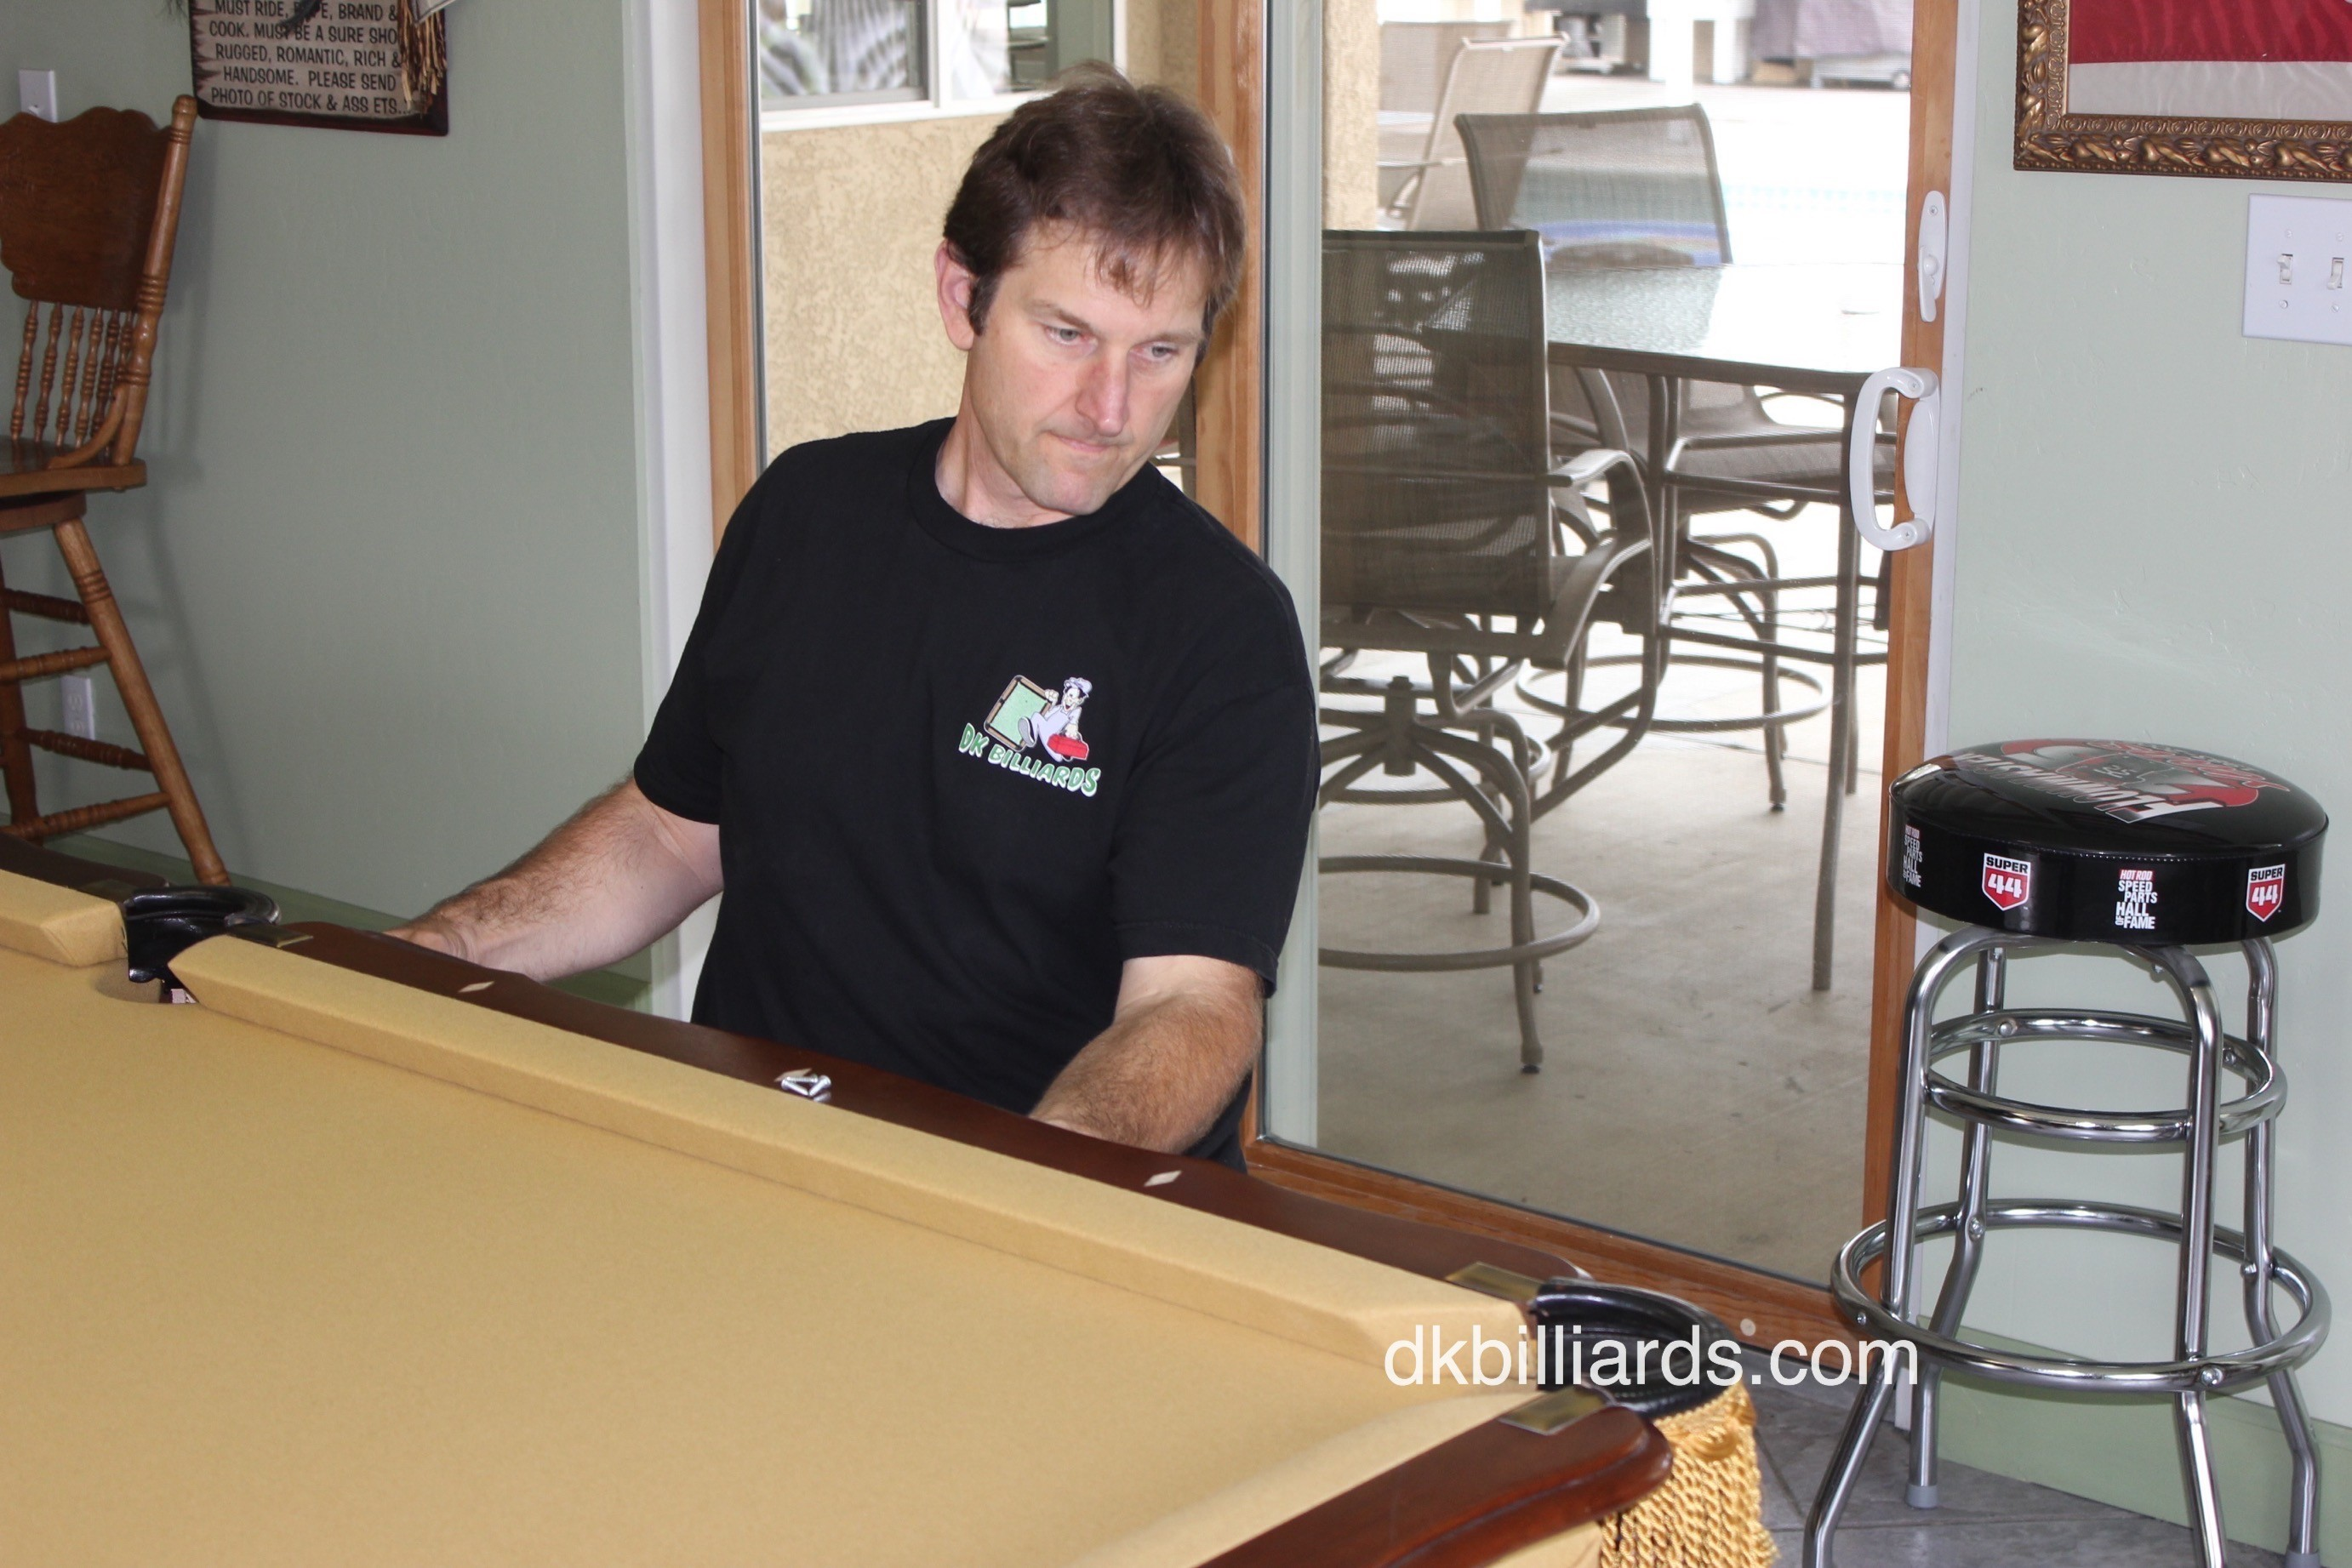 Aging Pool Tables Often Need A Major Overhaul Once They Hit About 35 50  Years Old. Even If The Table Hasnu0027t Been Played On Much Or Still Looks  Perfect, ...